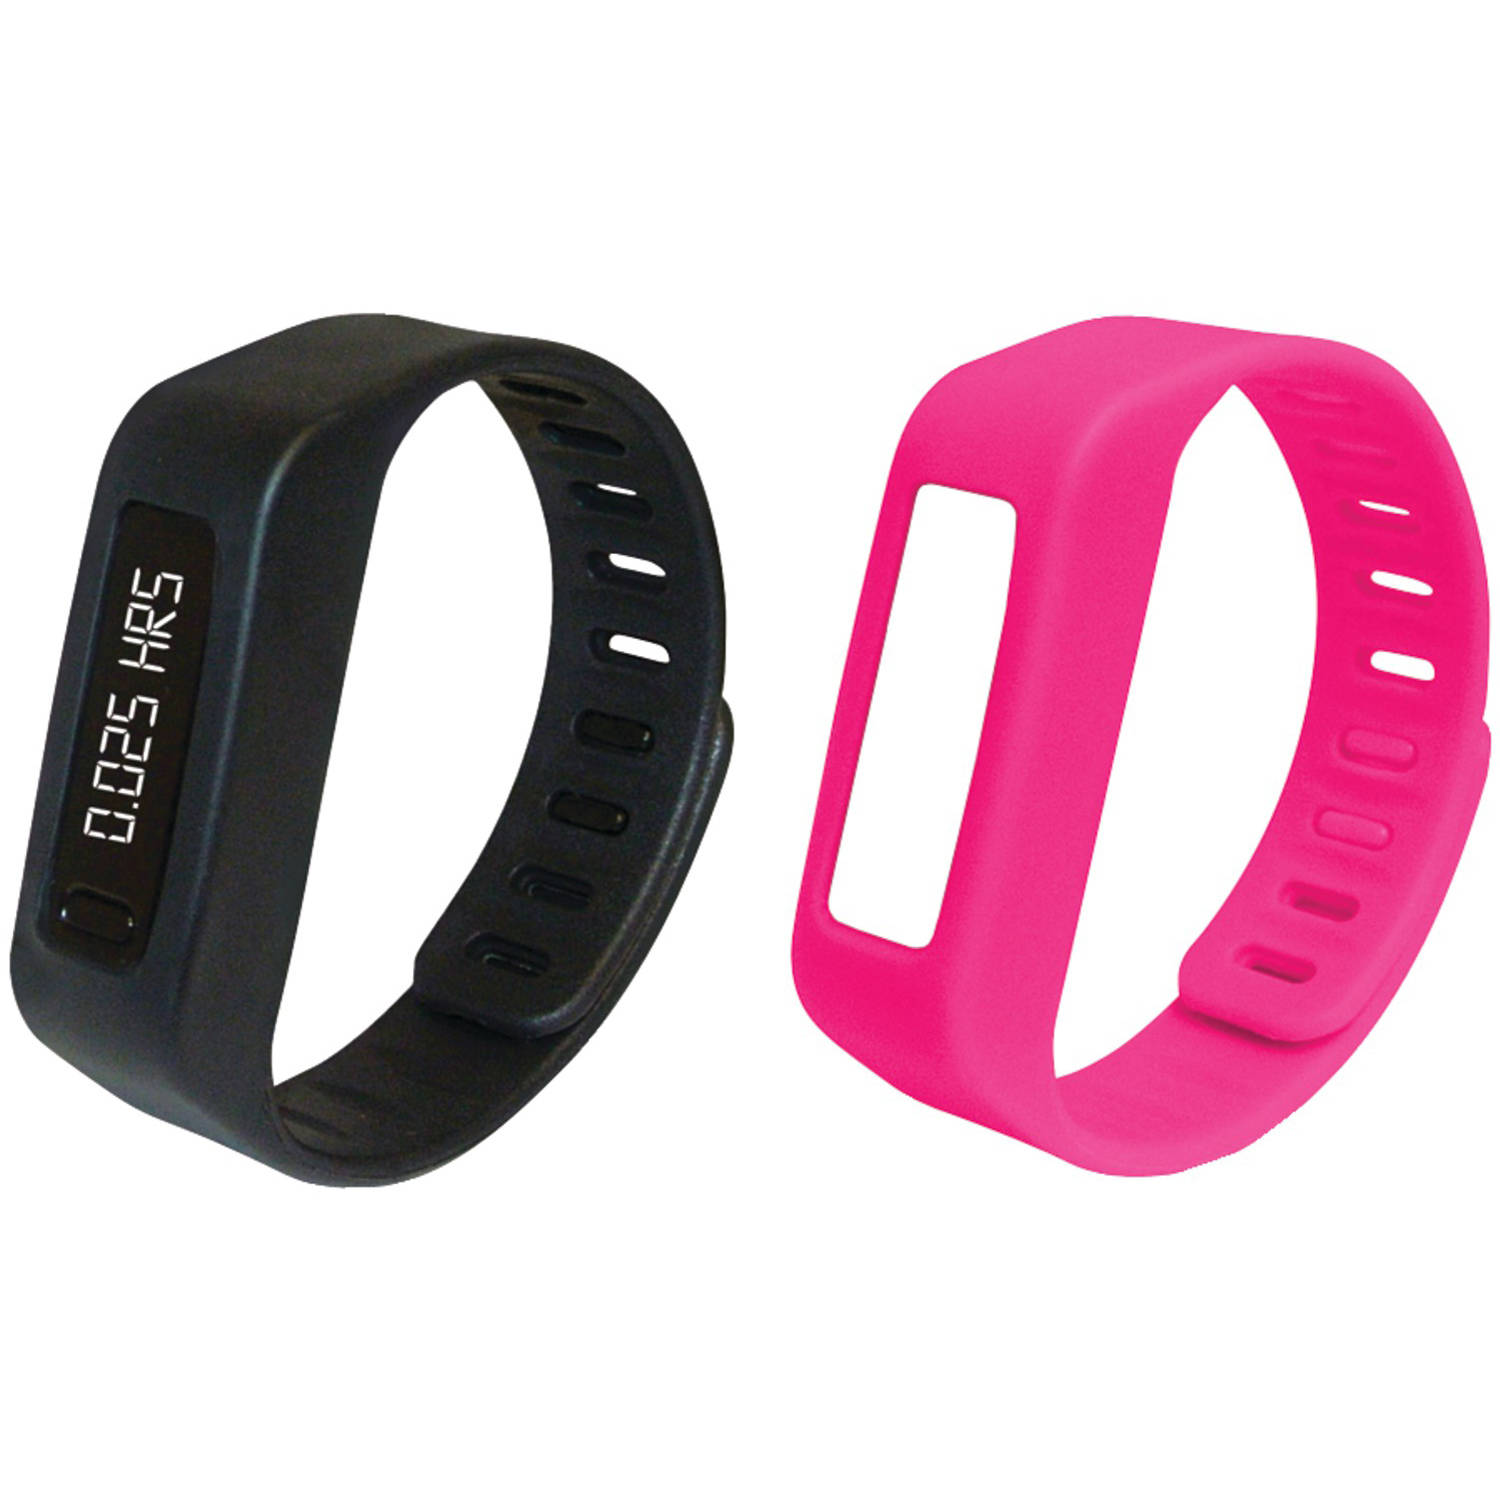 Naxa NSW-11PINK Lifeforce+ Fitness Watch, Pink